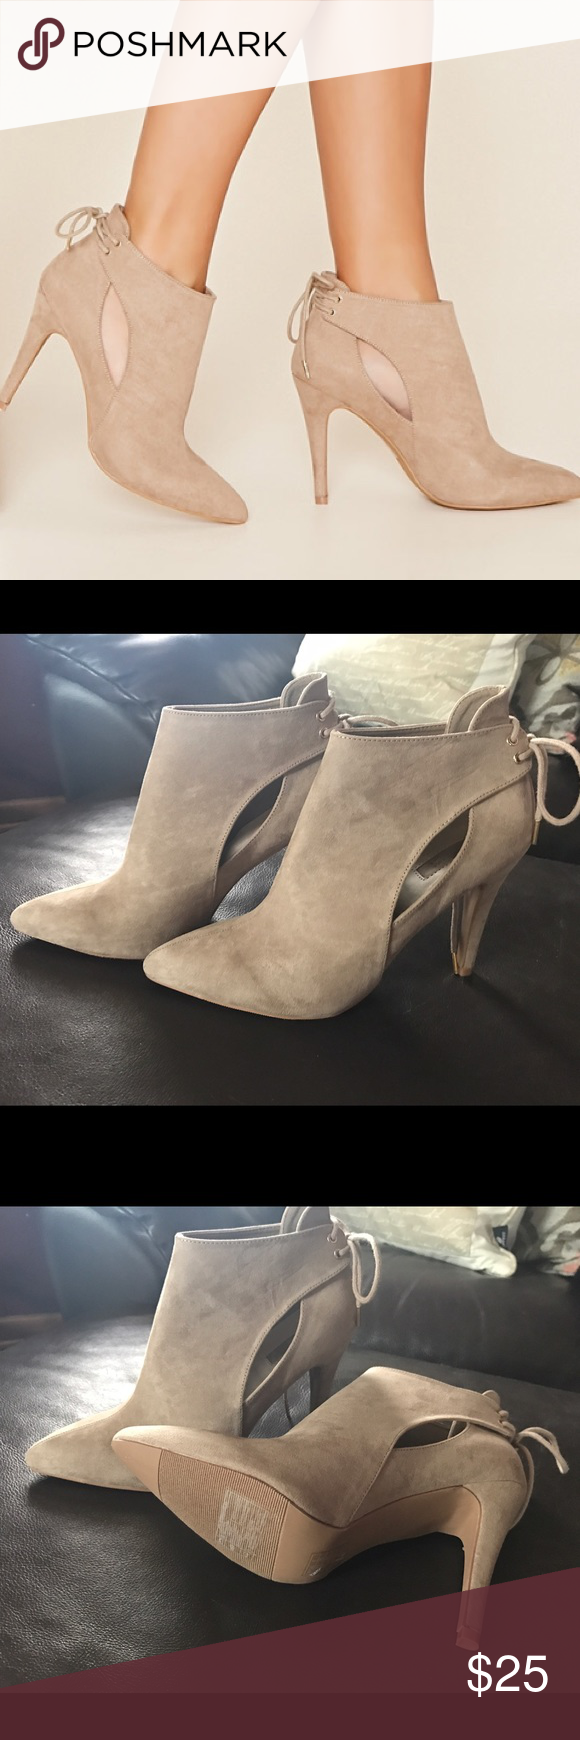 Faux Suede Ankle Booties A Pair Of Faux Suede Ankle Booties With A Stiletto Heel, Cutout Side Detailing, And A Lace-Up Back With High-Polish Grommets.  Brand new- never worn. Purchased the wrong size & cant exchange. Runs small. Would fit 7 1/2 Forever 21 Shoes Ankle Boots & Booties